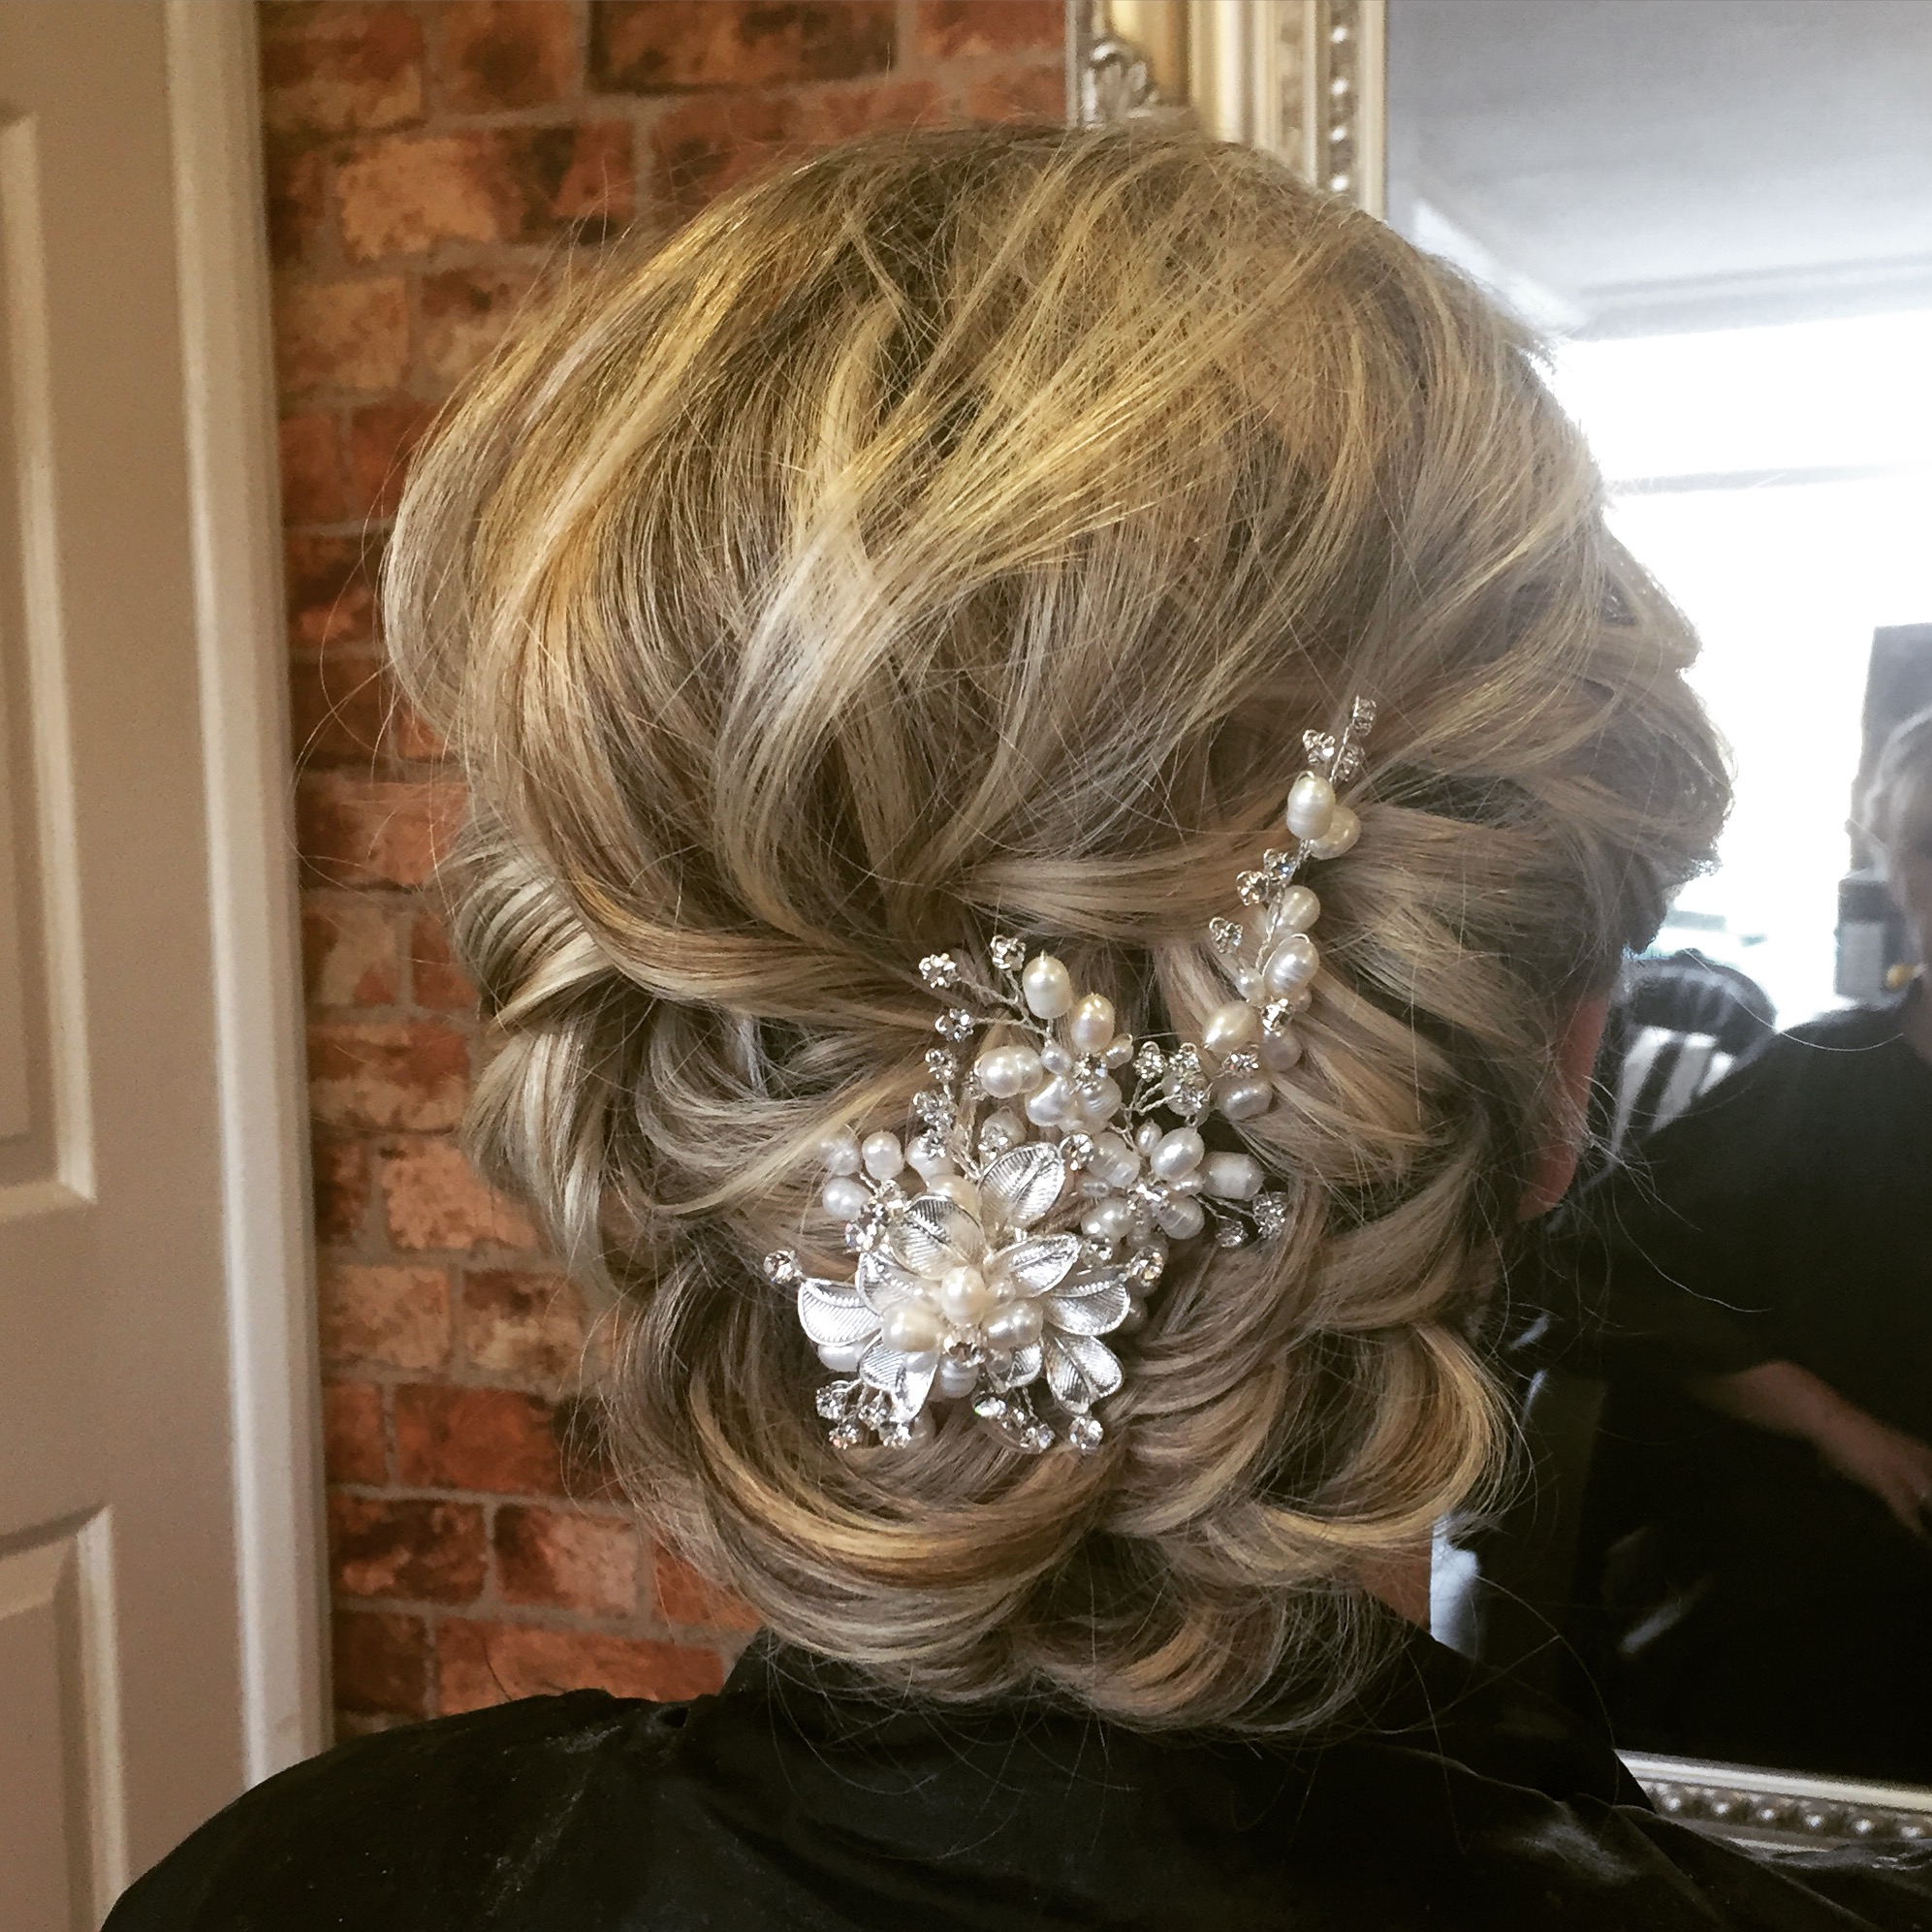 blonde bridal hair naturally finished with loose curls and beautiful wedding hair comb with diamonds